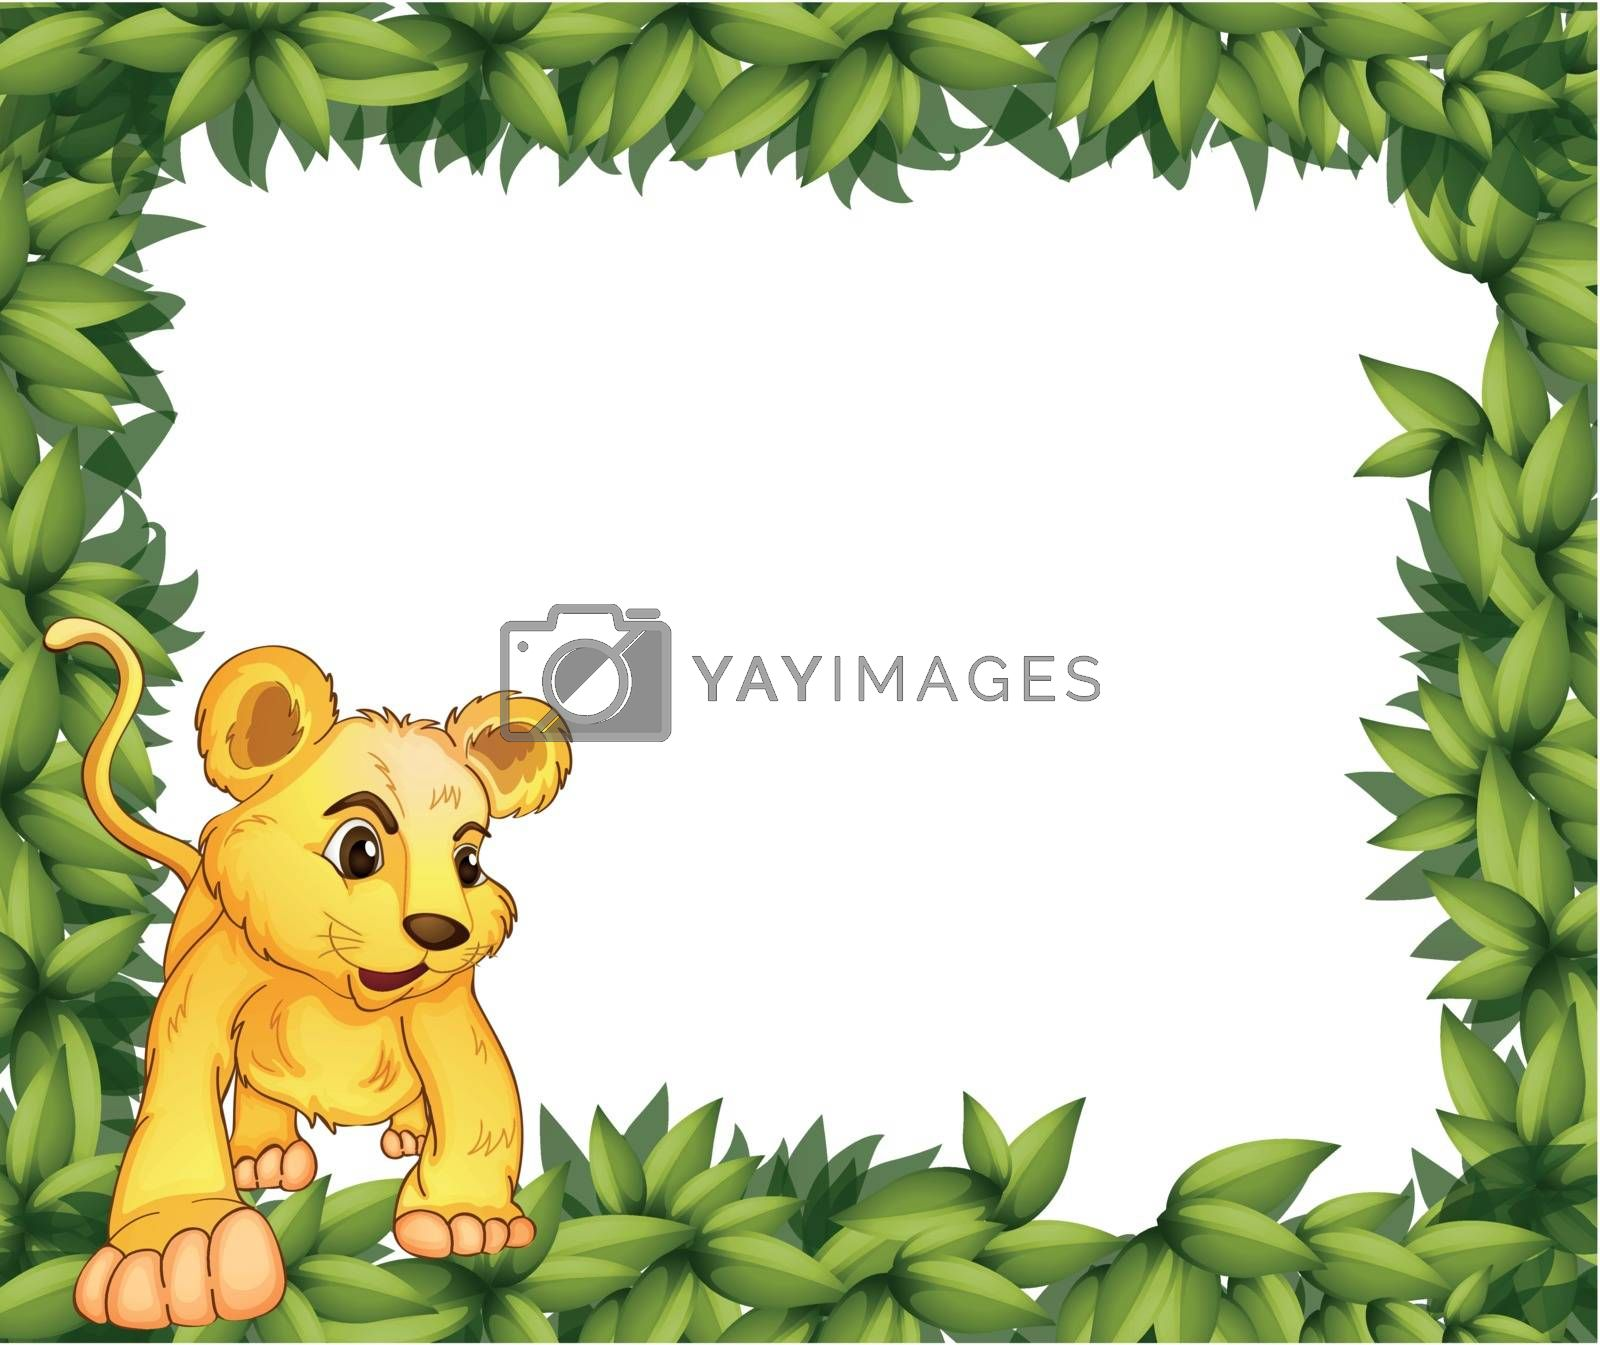 Illustration of a frame with an animal